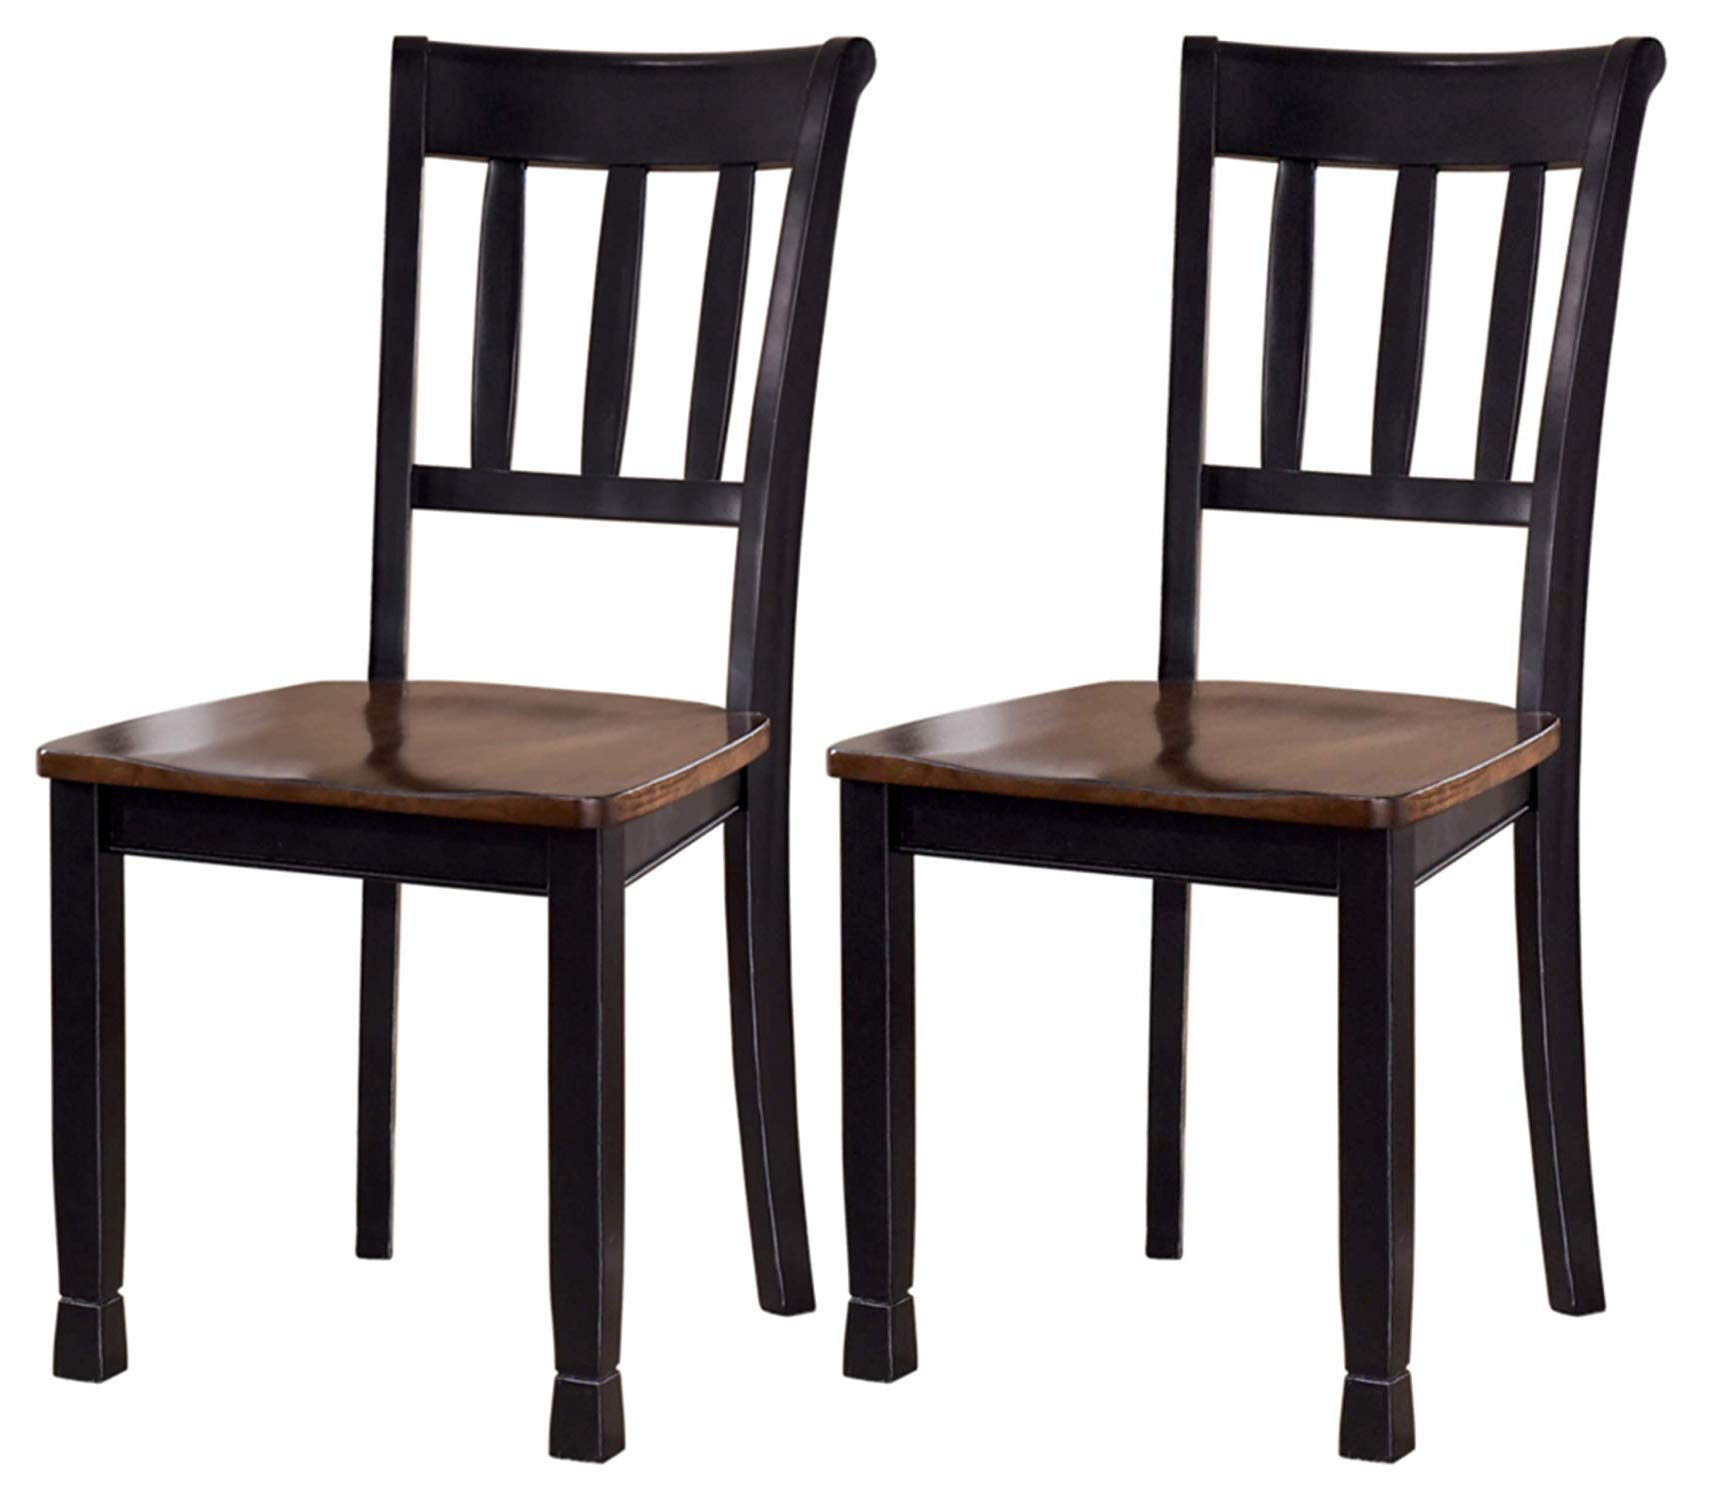 Ashley Furniture Signature Design - Owingsville Dining Room Side Chair - Latter Back - Set of 2 - Black-Brown by Signature Design by Ashley (Image #1)